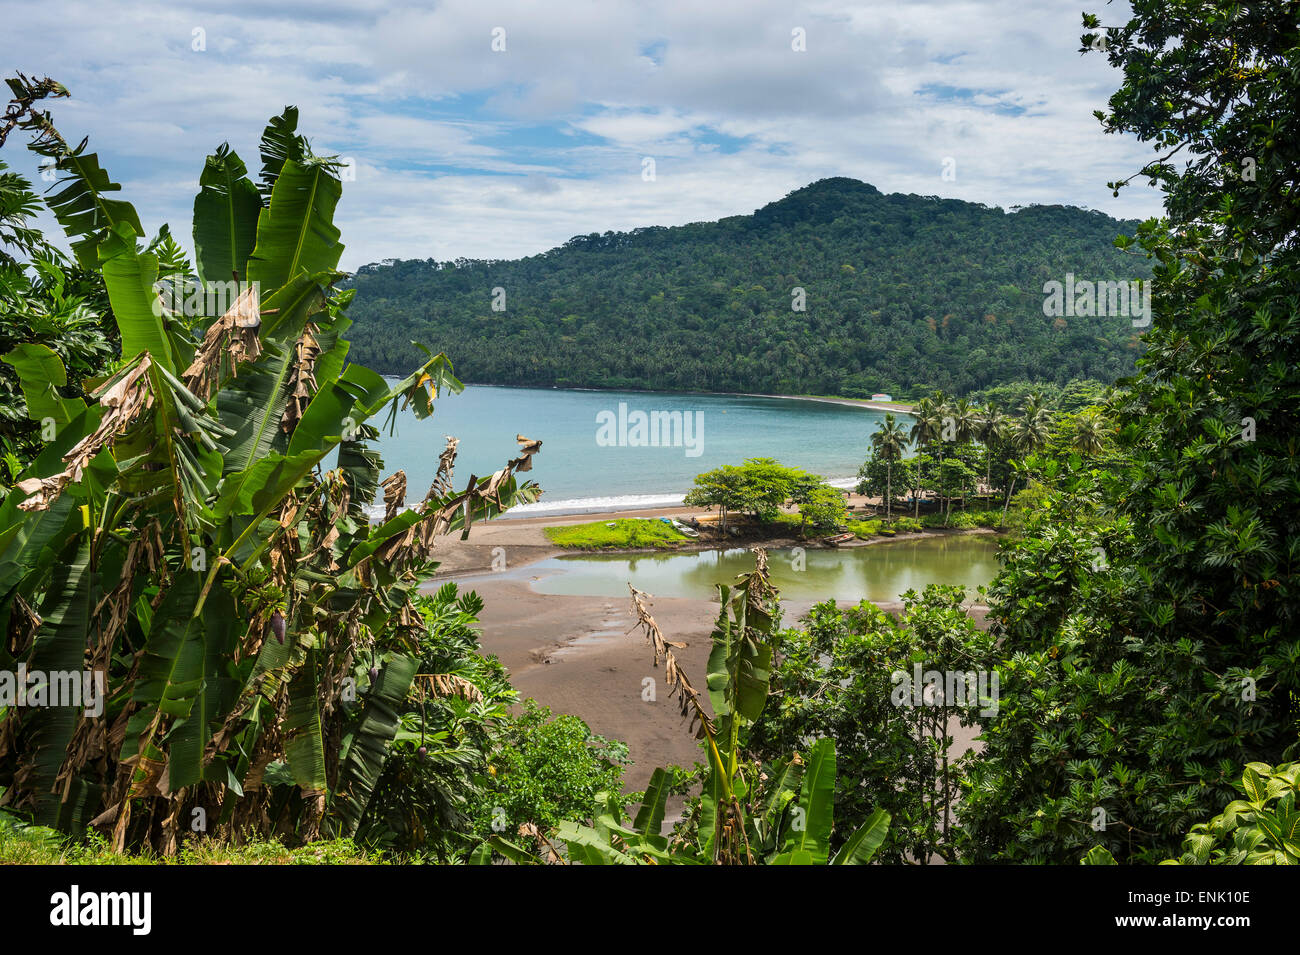 View over the bay of Sao Joao dos Angloares, East coast of Sao Tome, Sao Tome and Principe, Atlantic Ocean, Africa - Stock Image